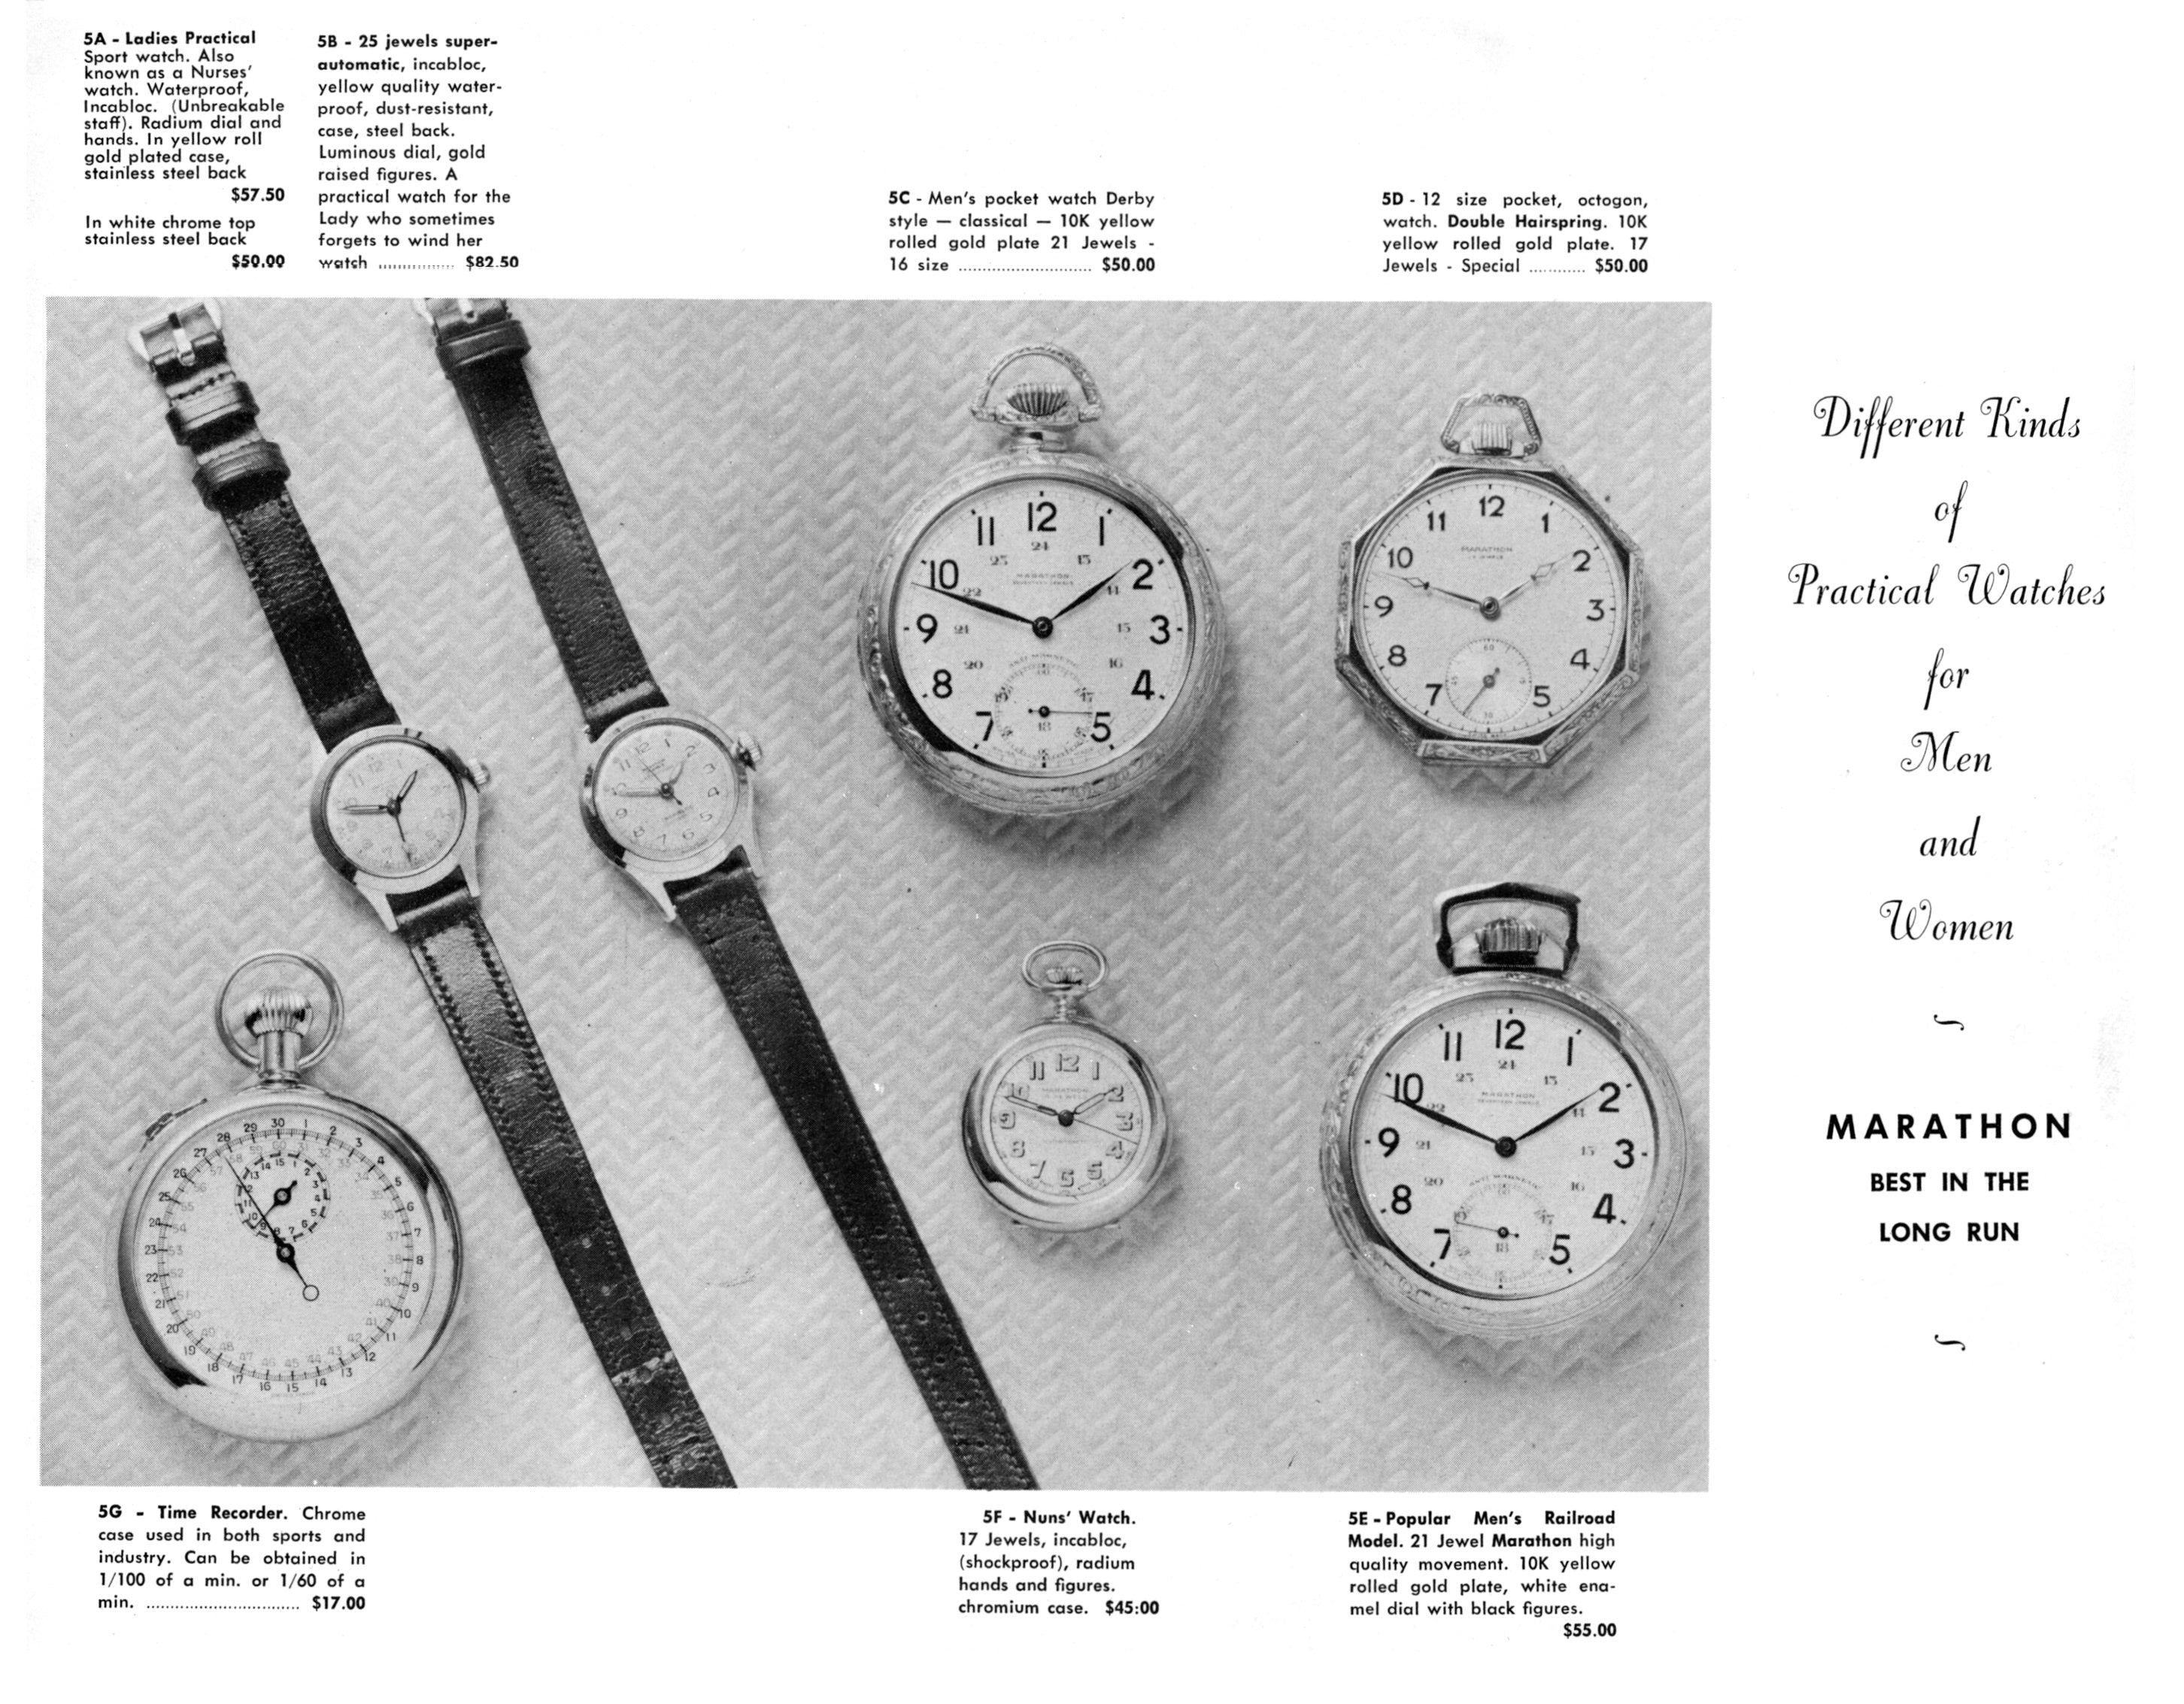 black and white ad: 'Different Kinds of Practical Watches for Men and Women. Marathon: Best in the long run' next to images of seven watches, both wrist and pocket